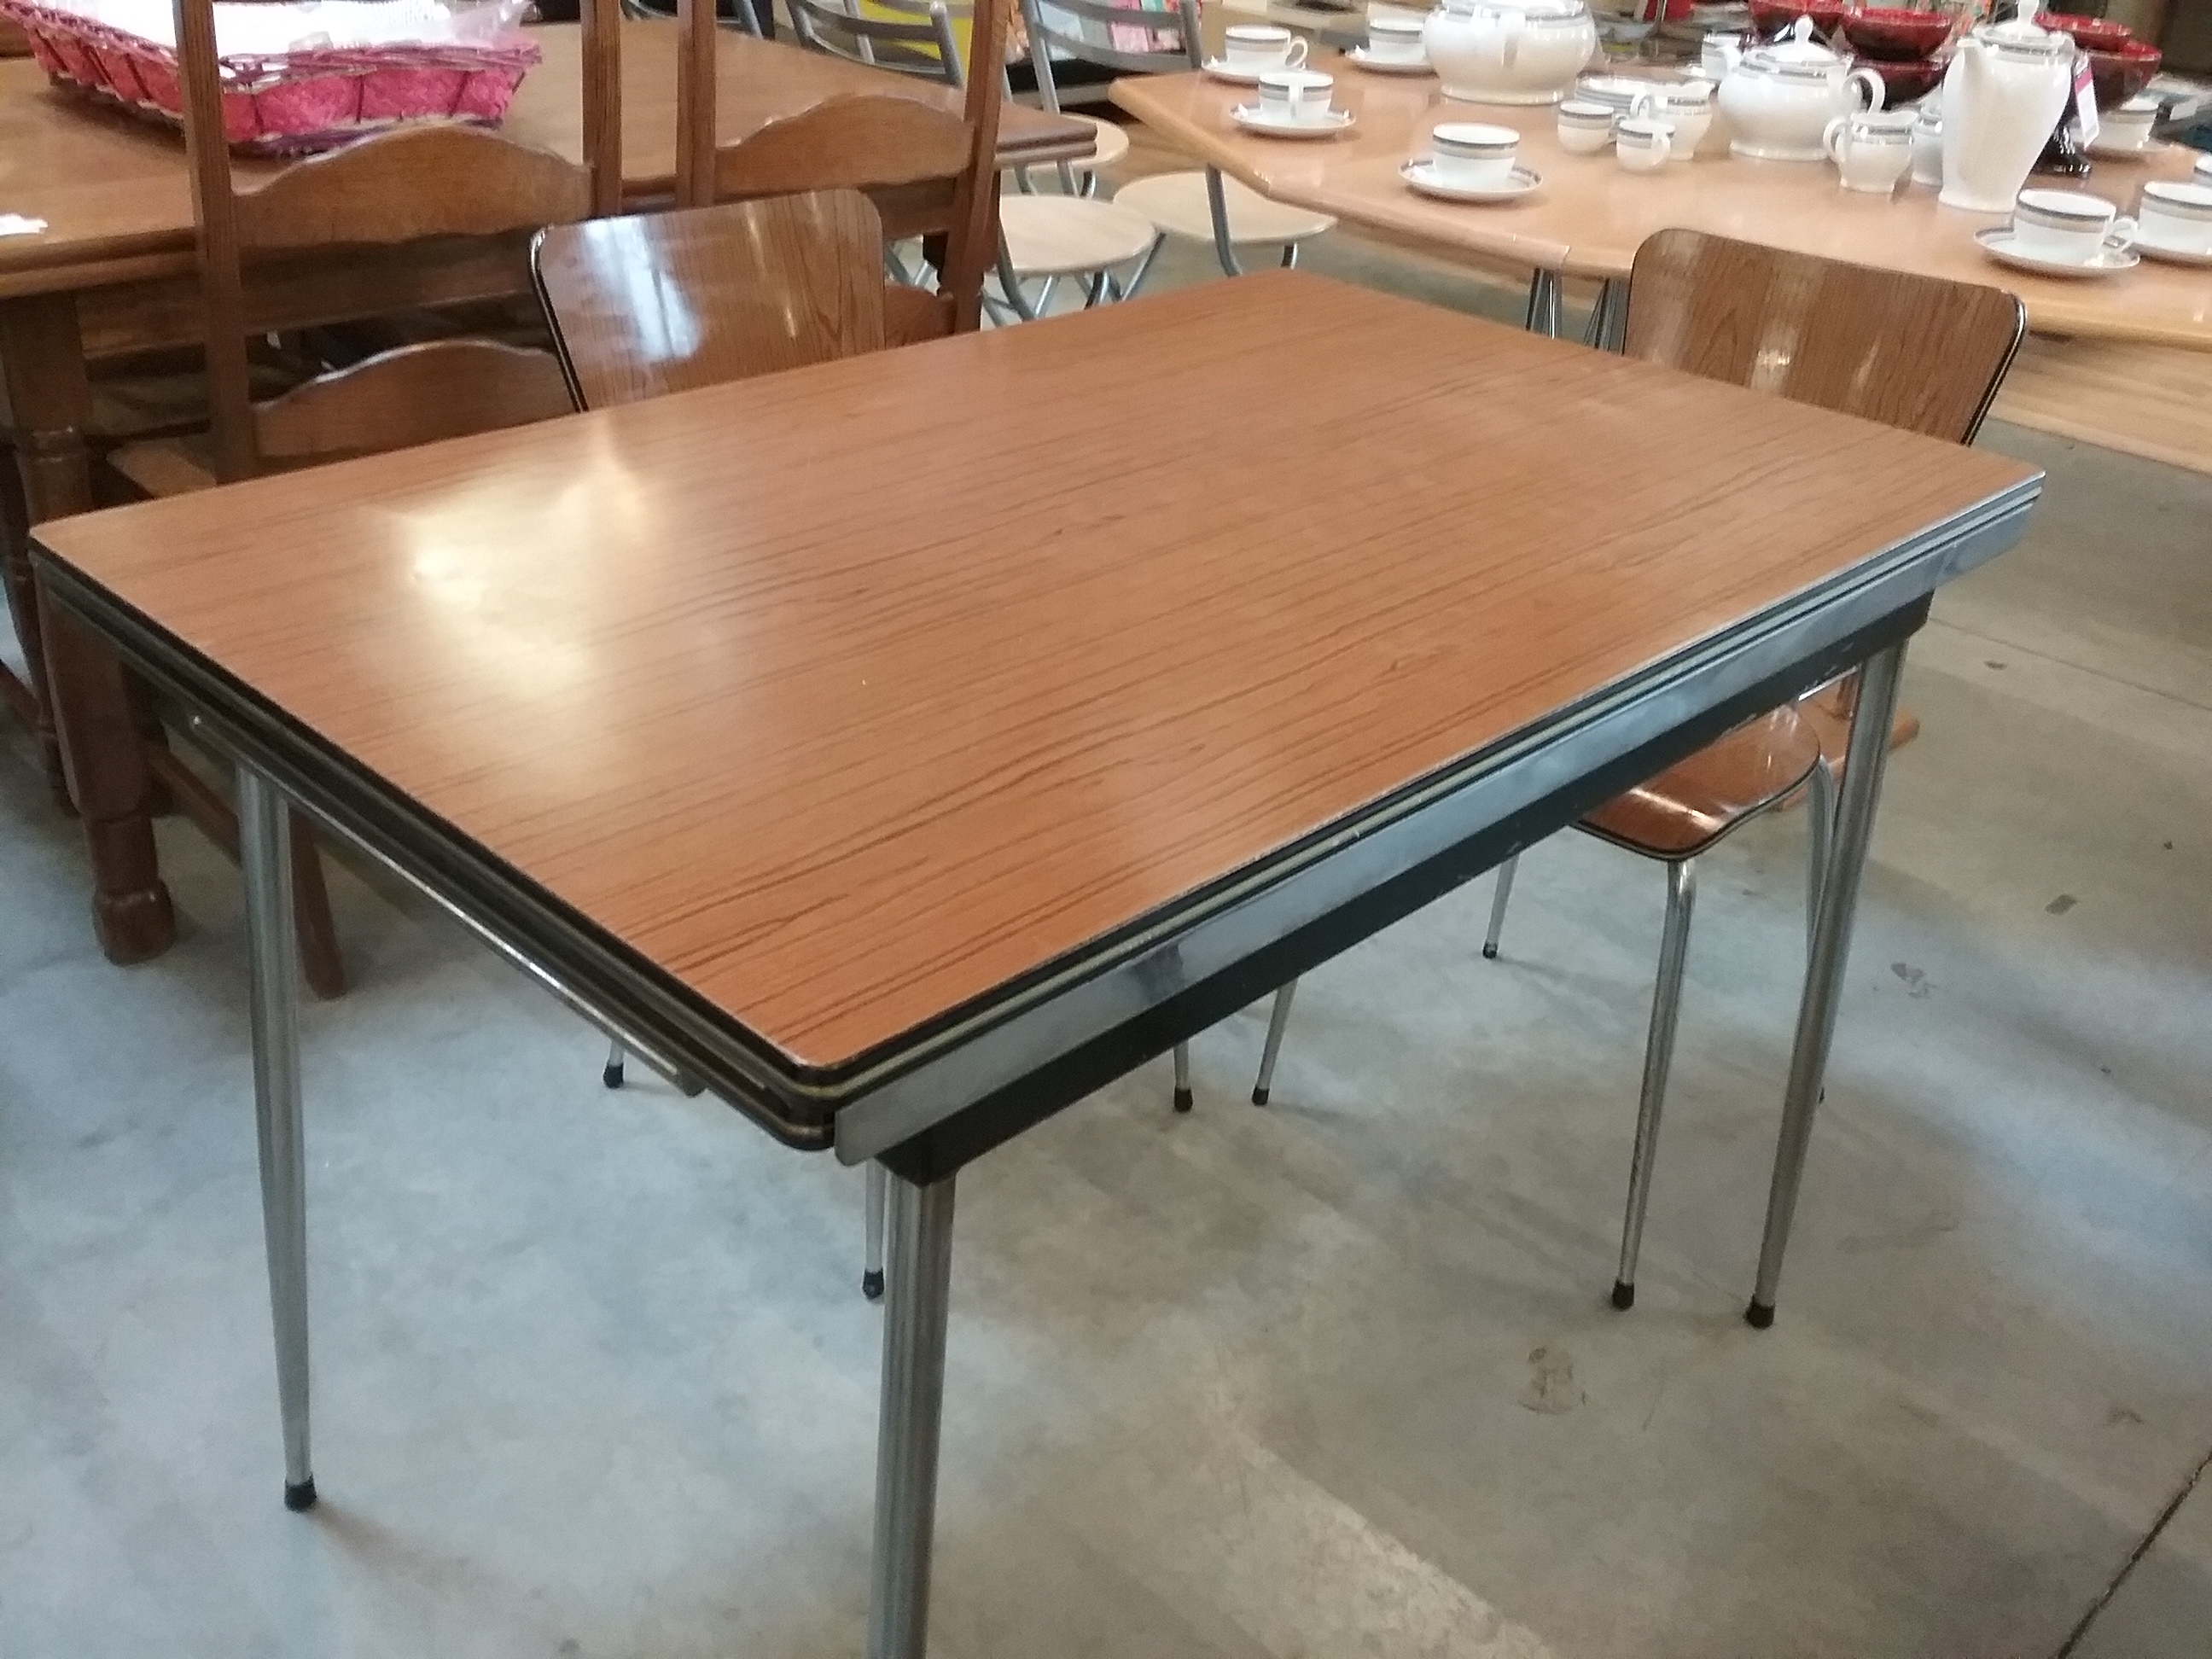 Table Formica Brune 2all Occasion Eco Cash